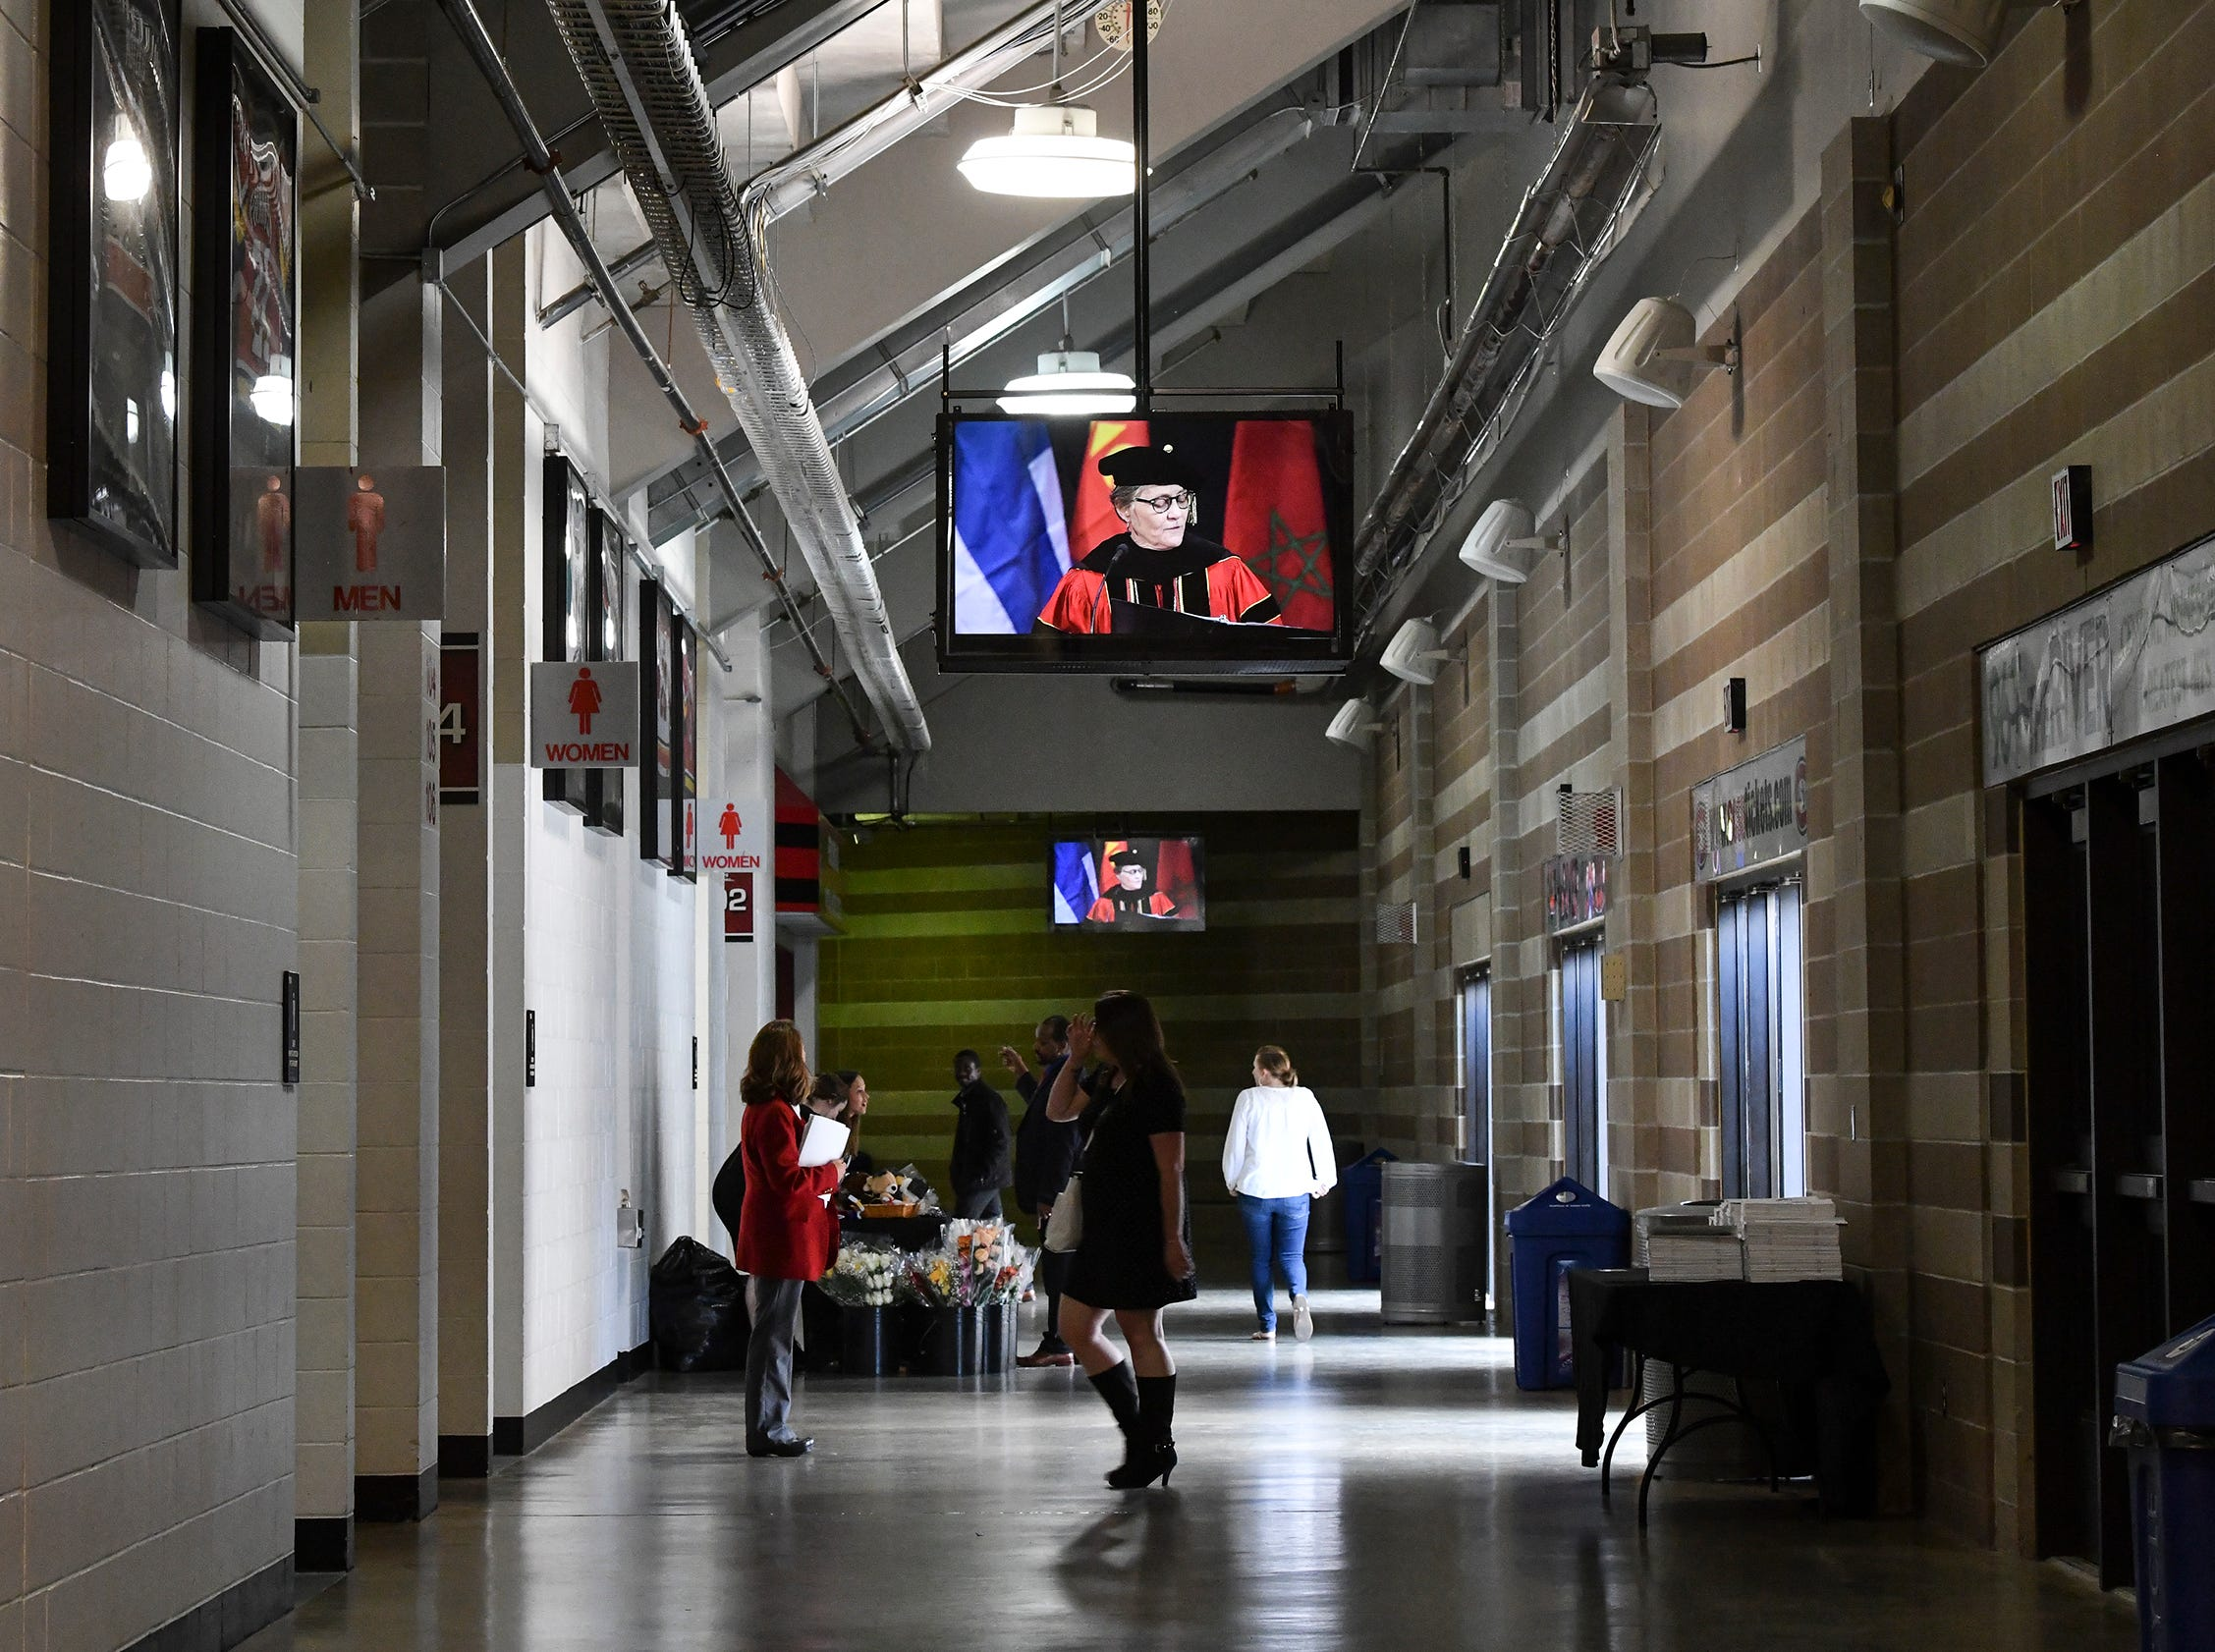 The image of university president Robbyn Wacker is projected on televisions in the hallway of the Herb Brooks National Hockey Center during commencement exercises Friday, May 10, in St. Cloud.